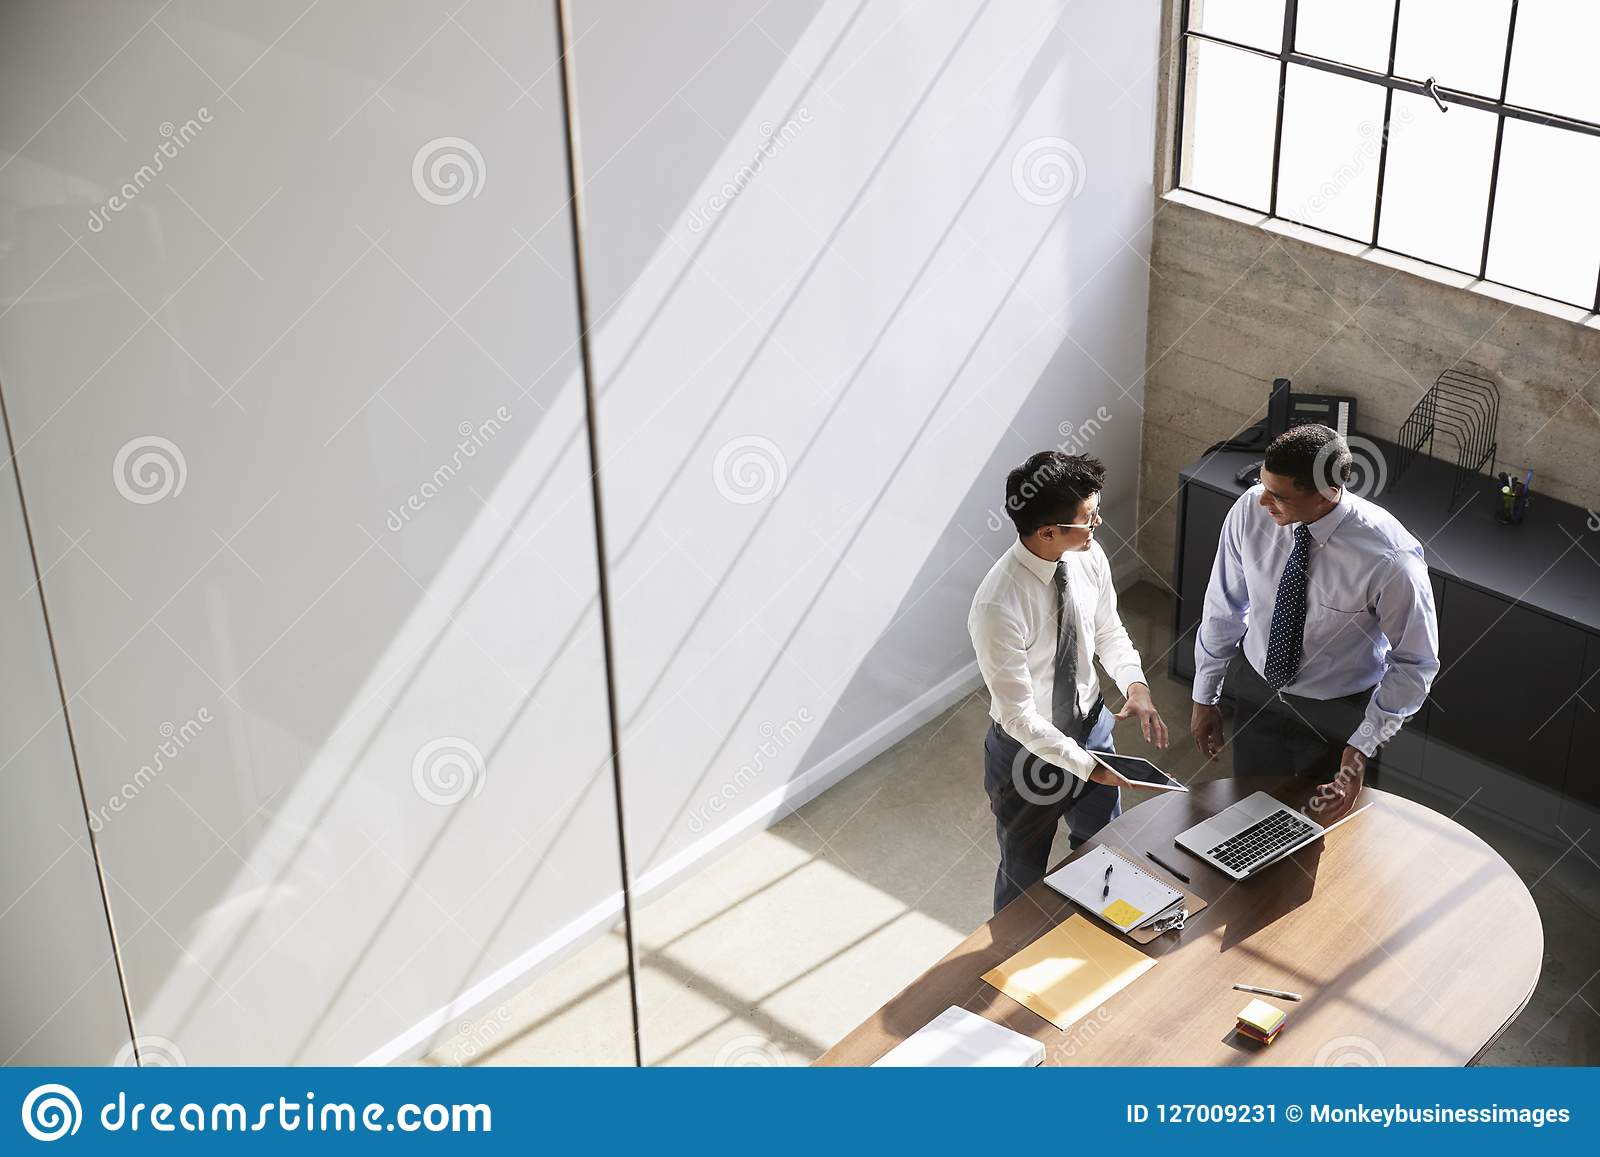 Two businessmen in discussion using laptop, elevated view